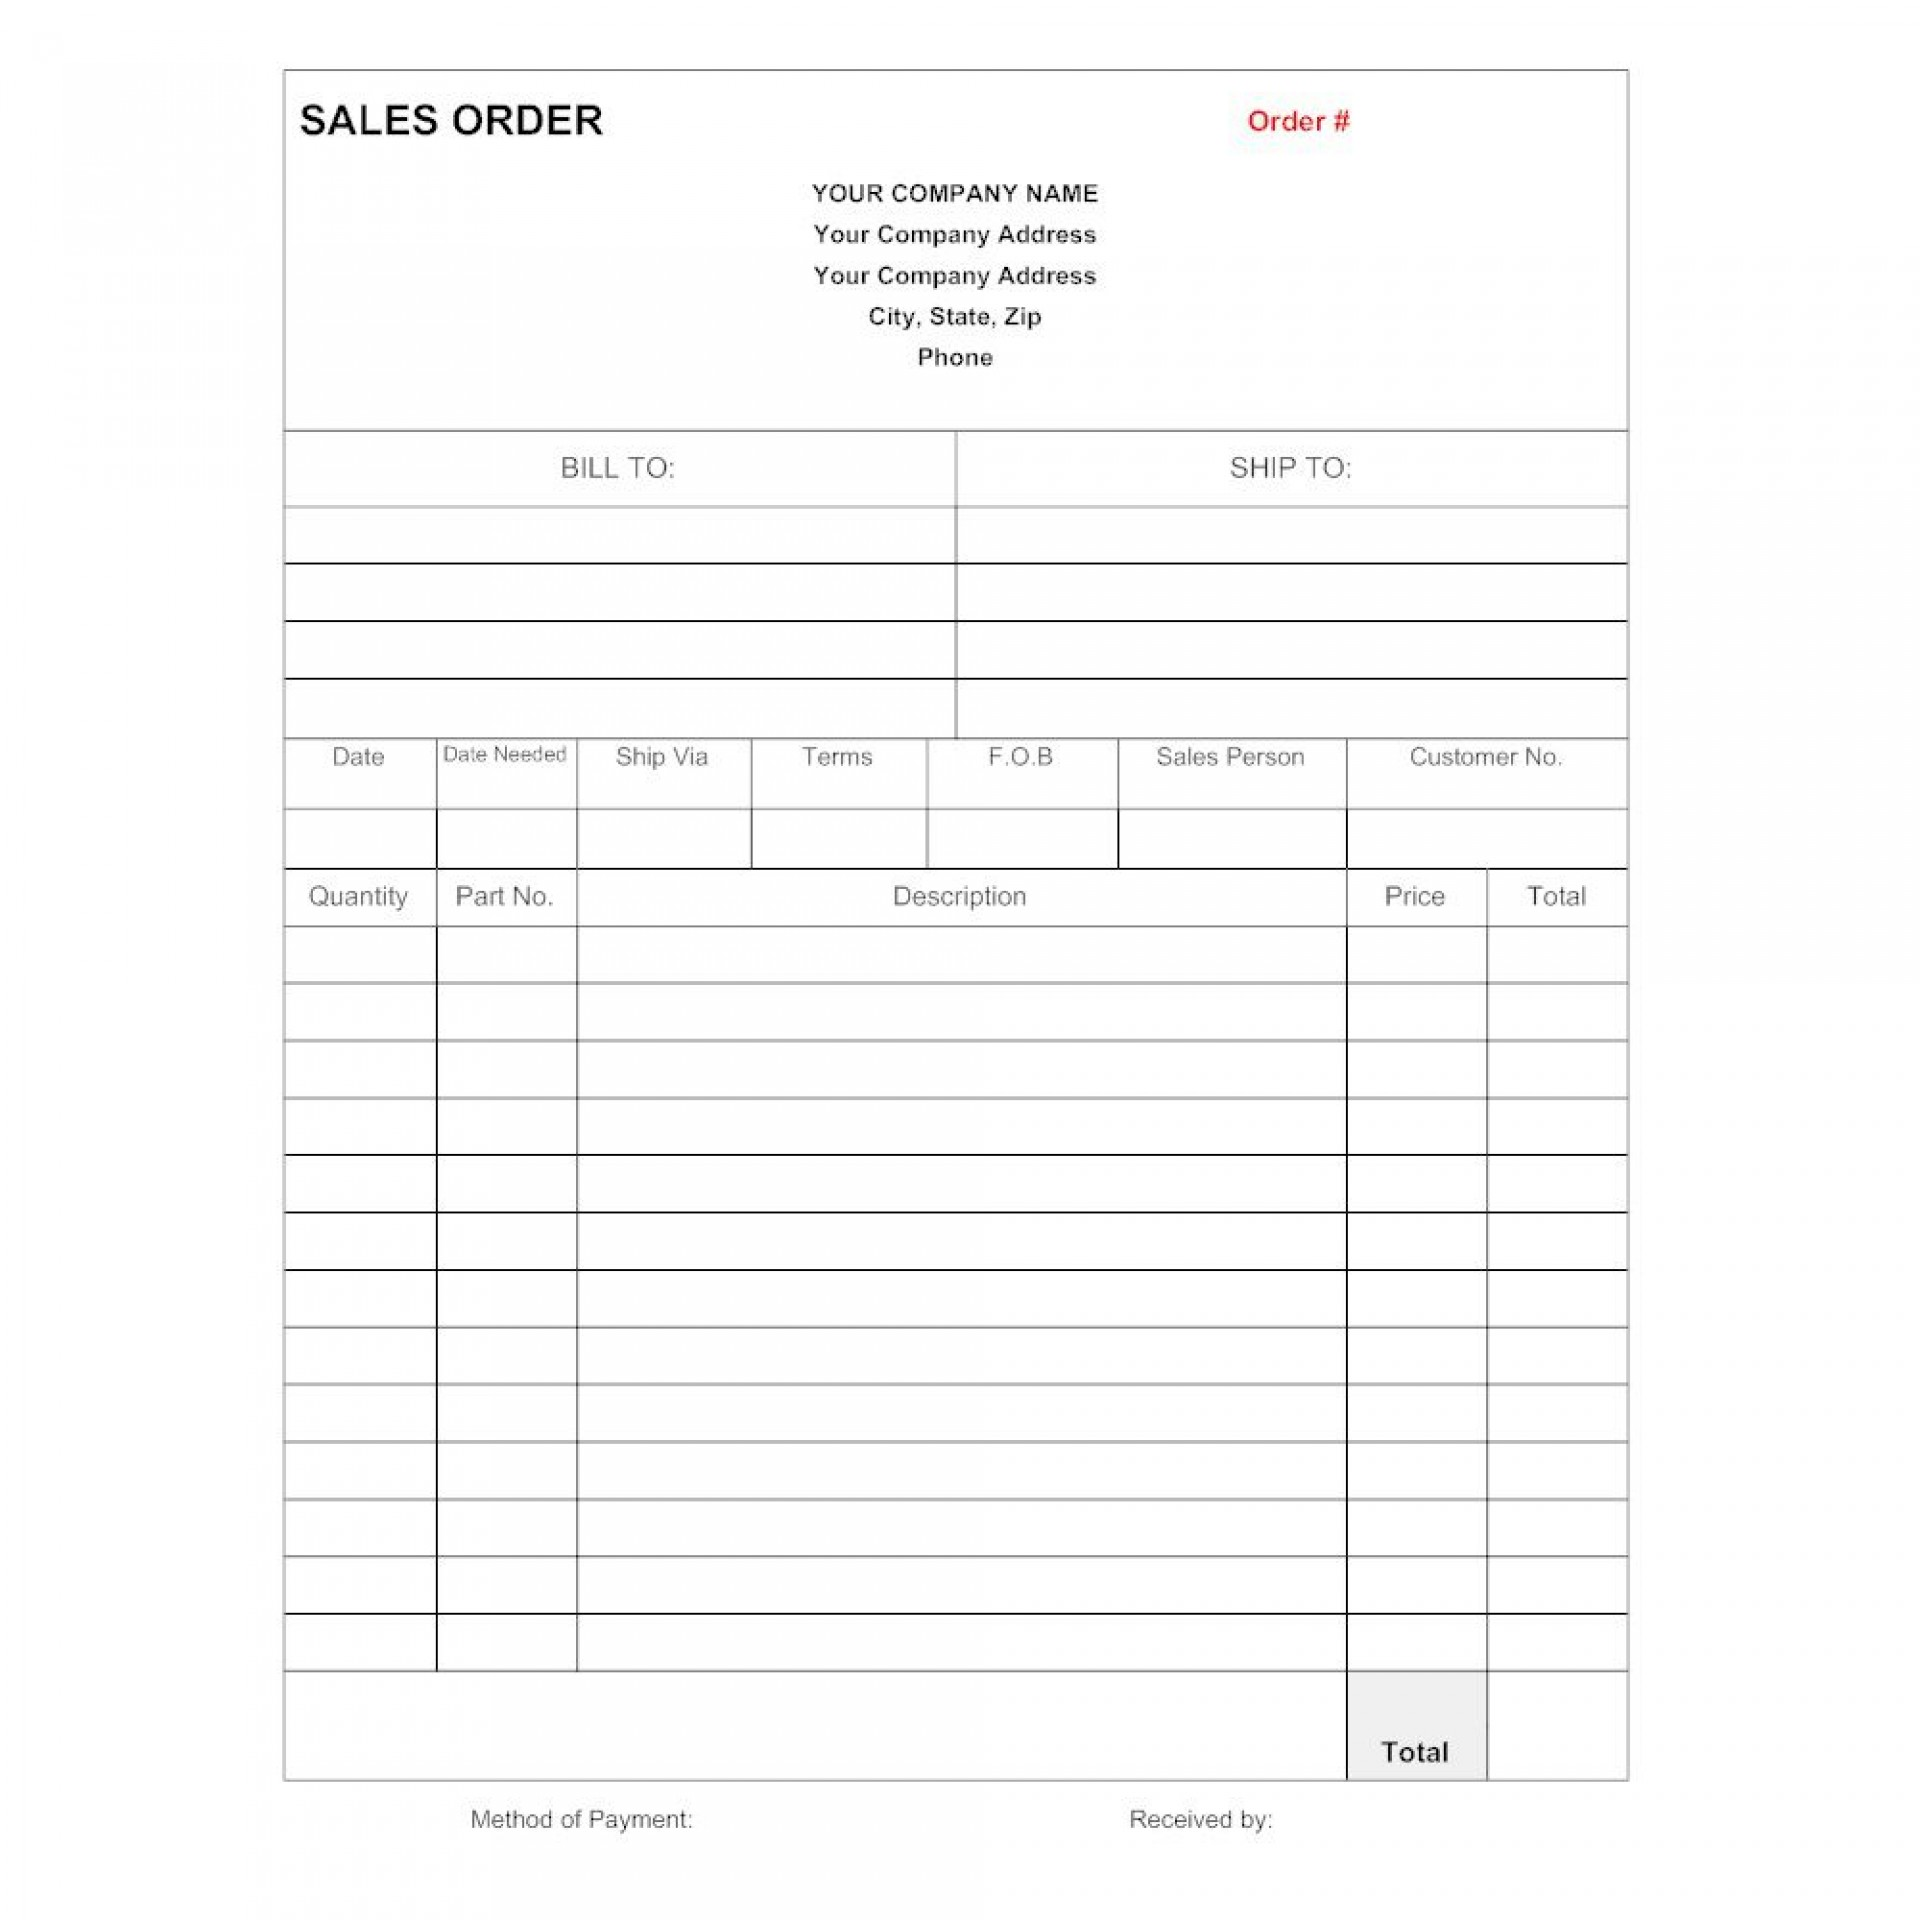 008 Shocking Sale Order Form Template Highest Quality  Templates Excel Word Free Online1920